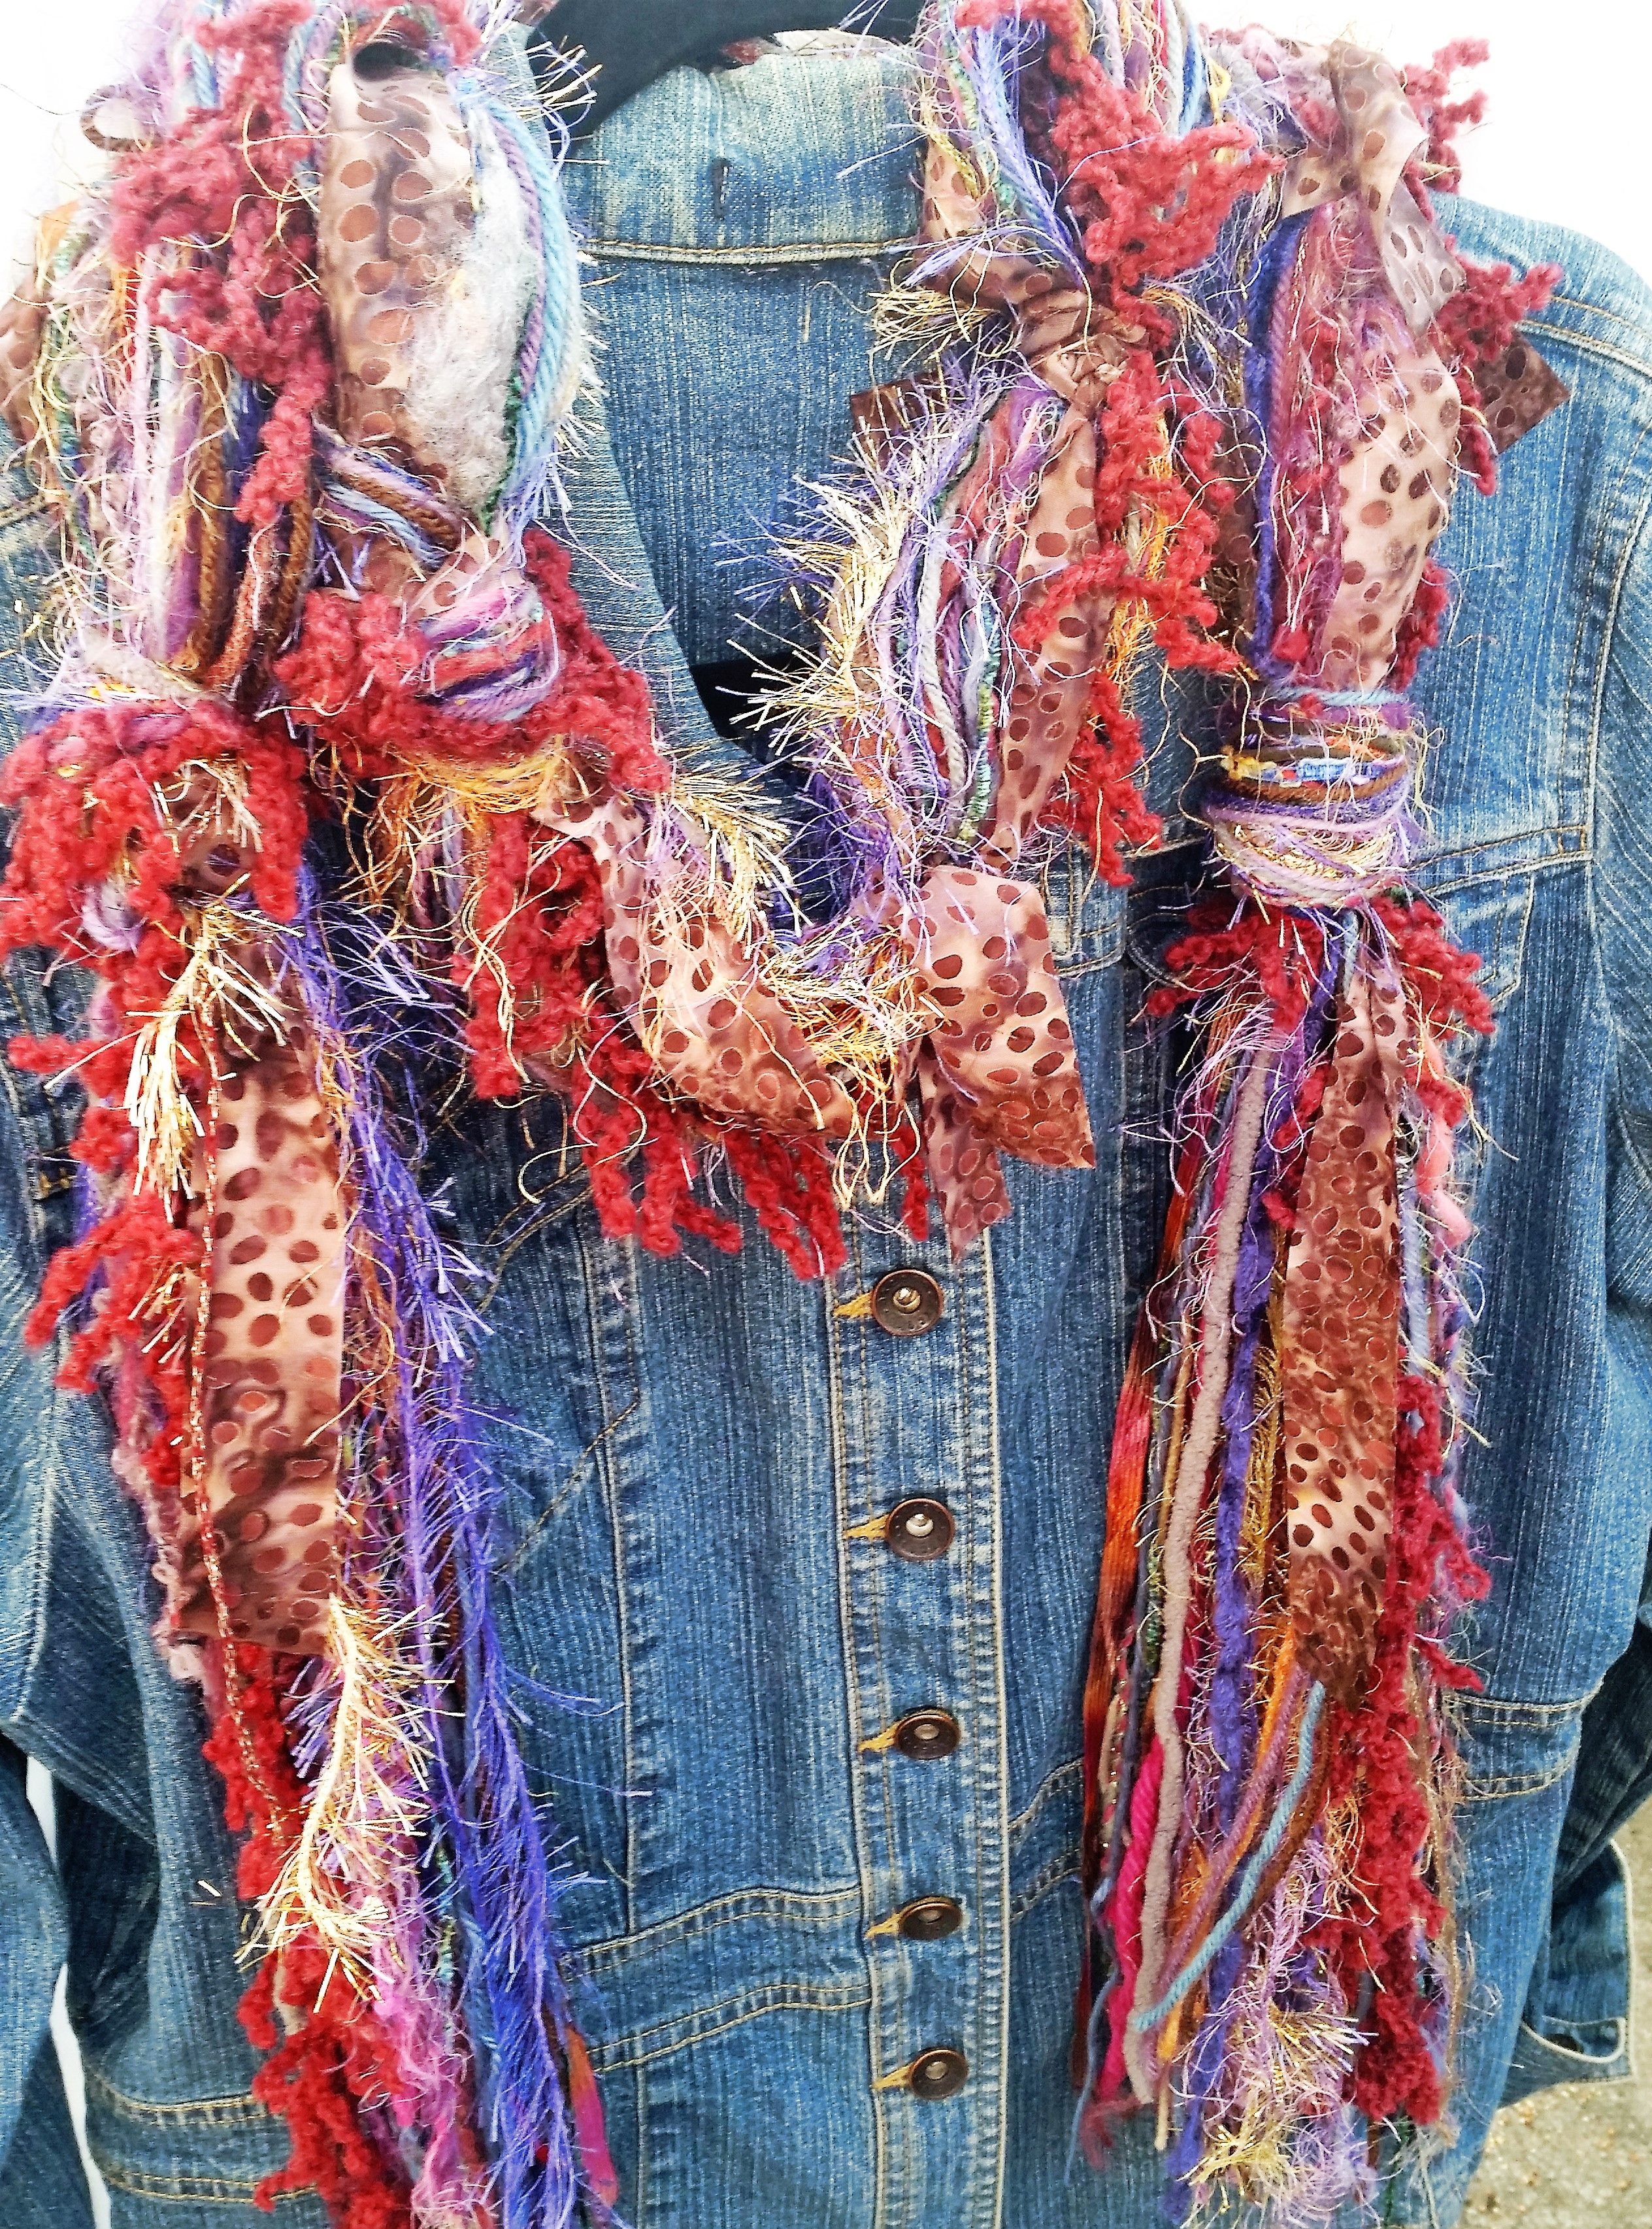 Beautiful, handmade knotted scarves made with yarn, batik